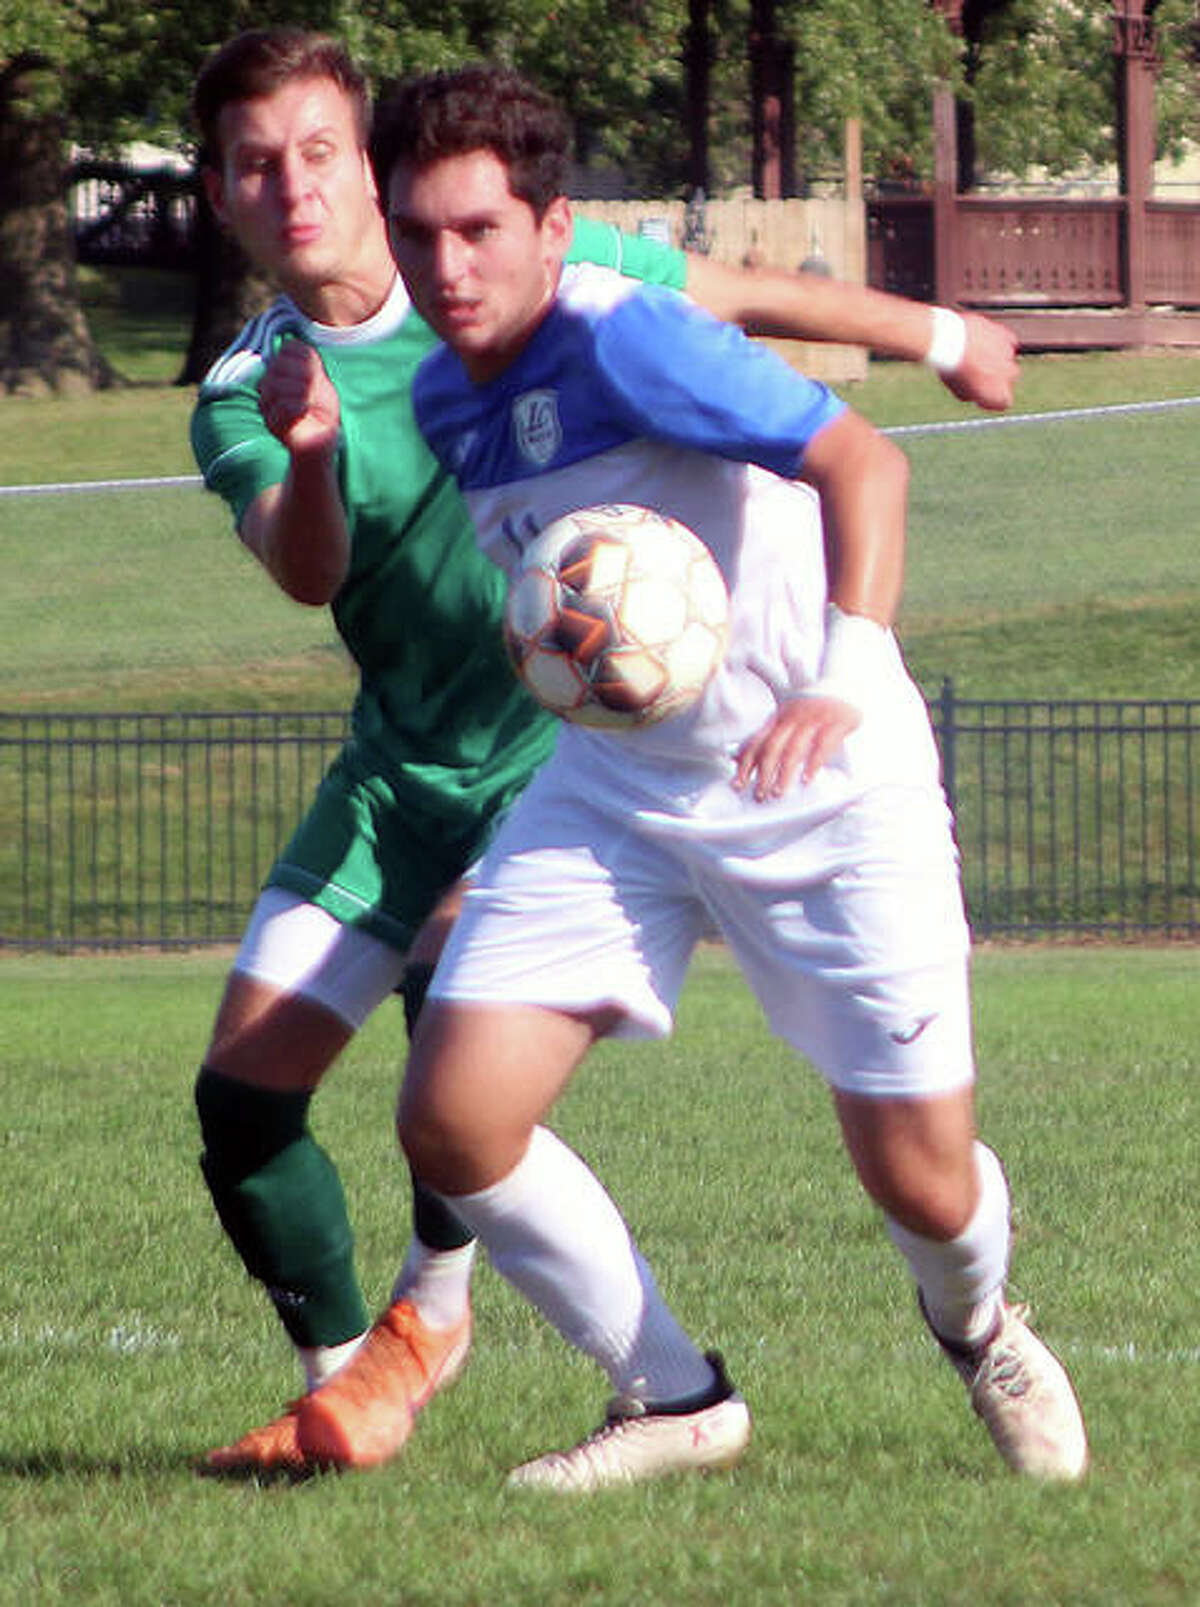 Tony Bodul of LCCC, front, jockeys with a John Woods College player for possession of the ball last season at LCCC.